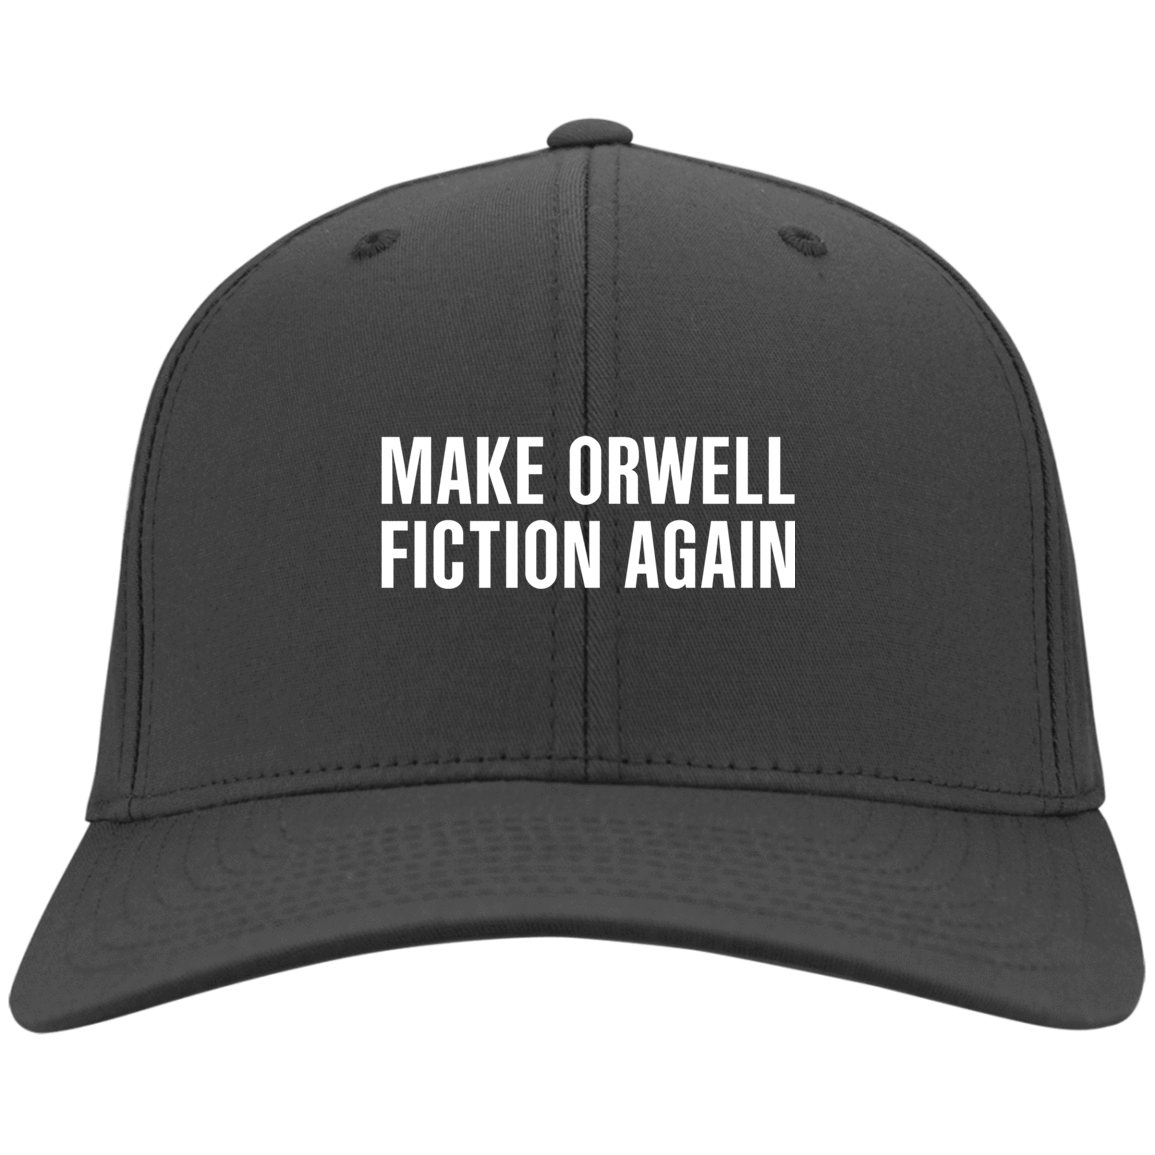 Make Orwell Fiction Again Hat 10-9379-74169573-45466 - Tee Ript